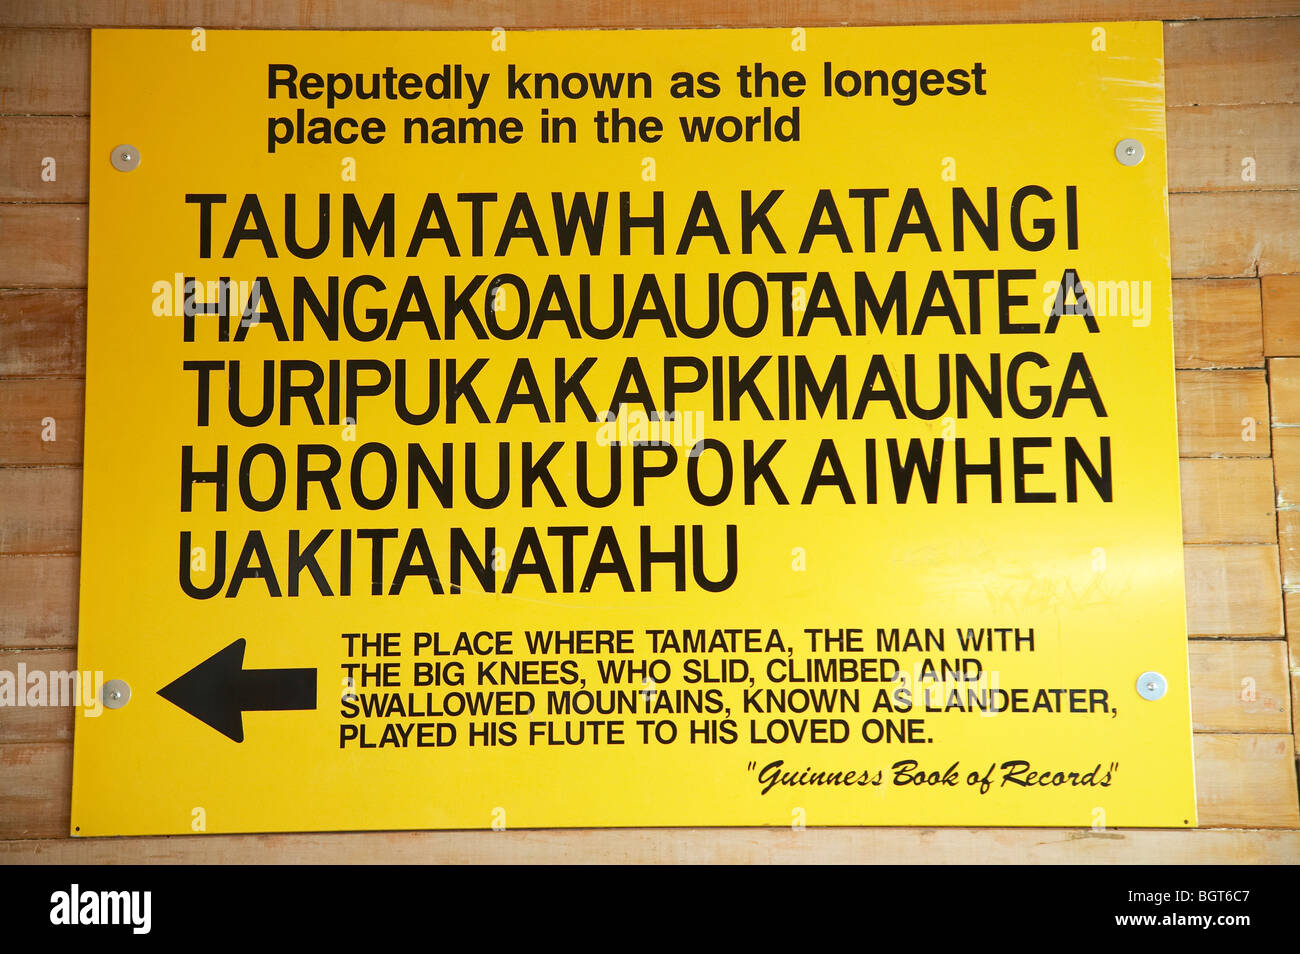 Sign for the World's Longest Place Name, Visitor Information Centre, Central Hawkes Bay, North Island, New Zealand - Stock Image